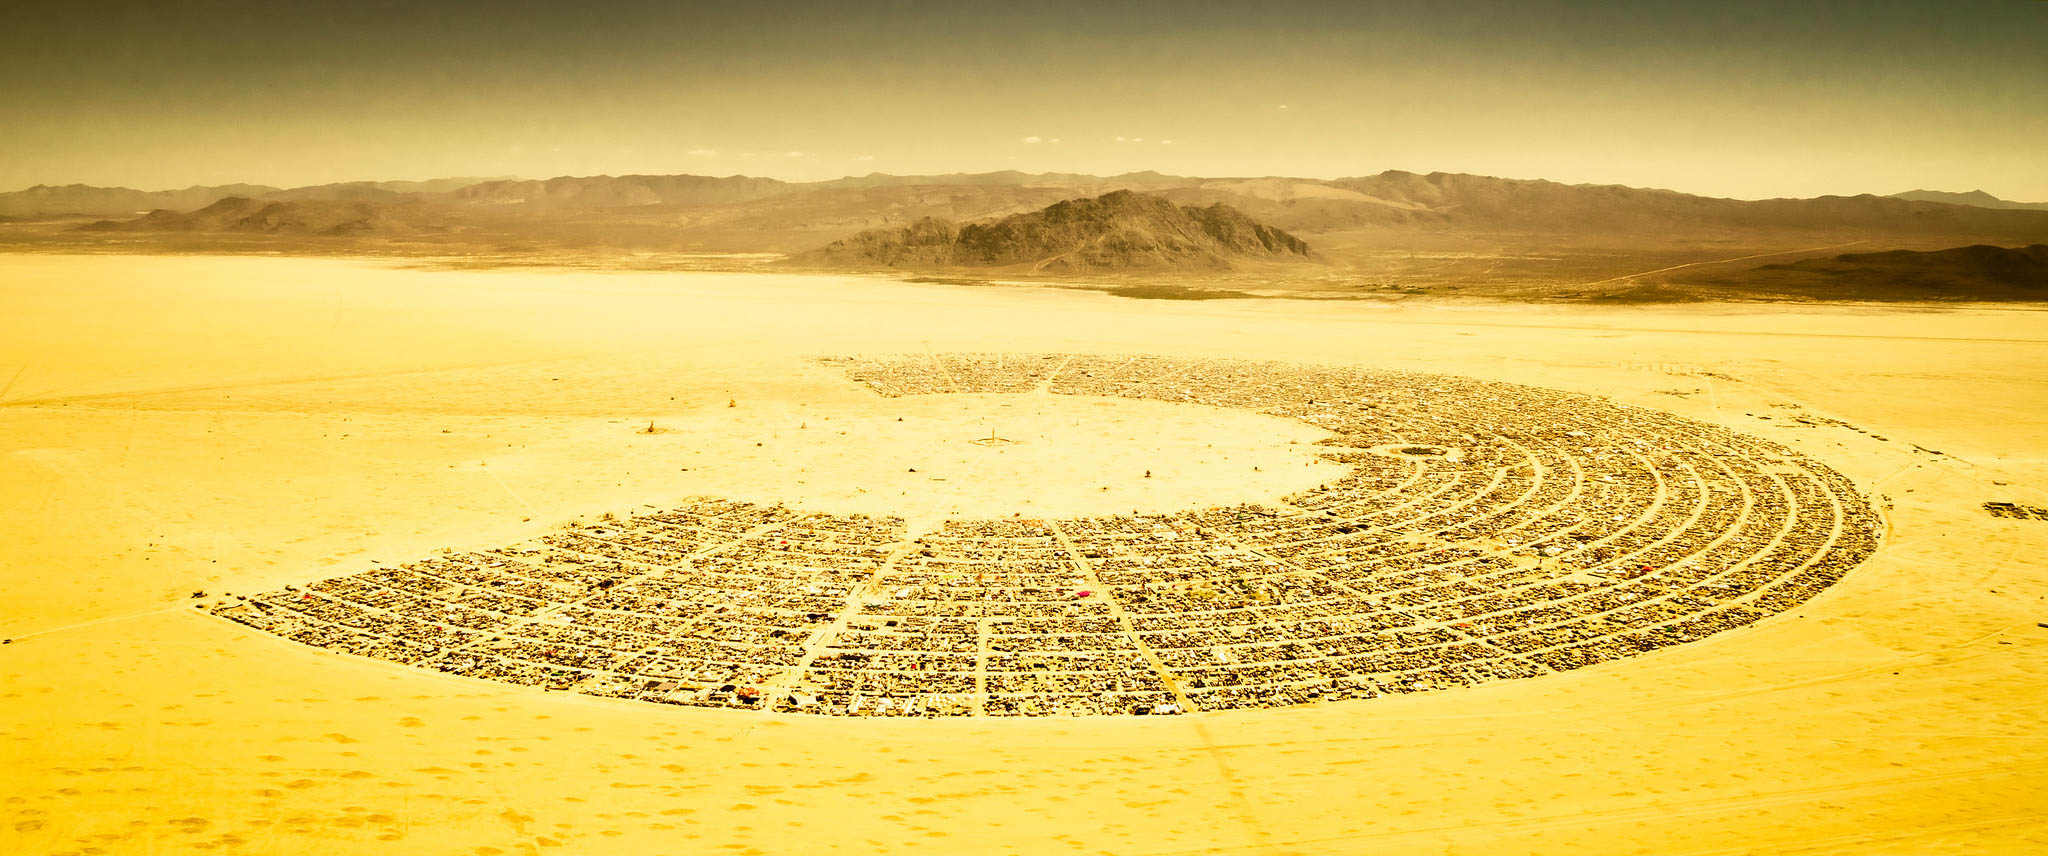 Black Rock Desert from above - Burning Man